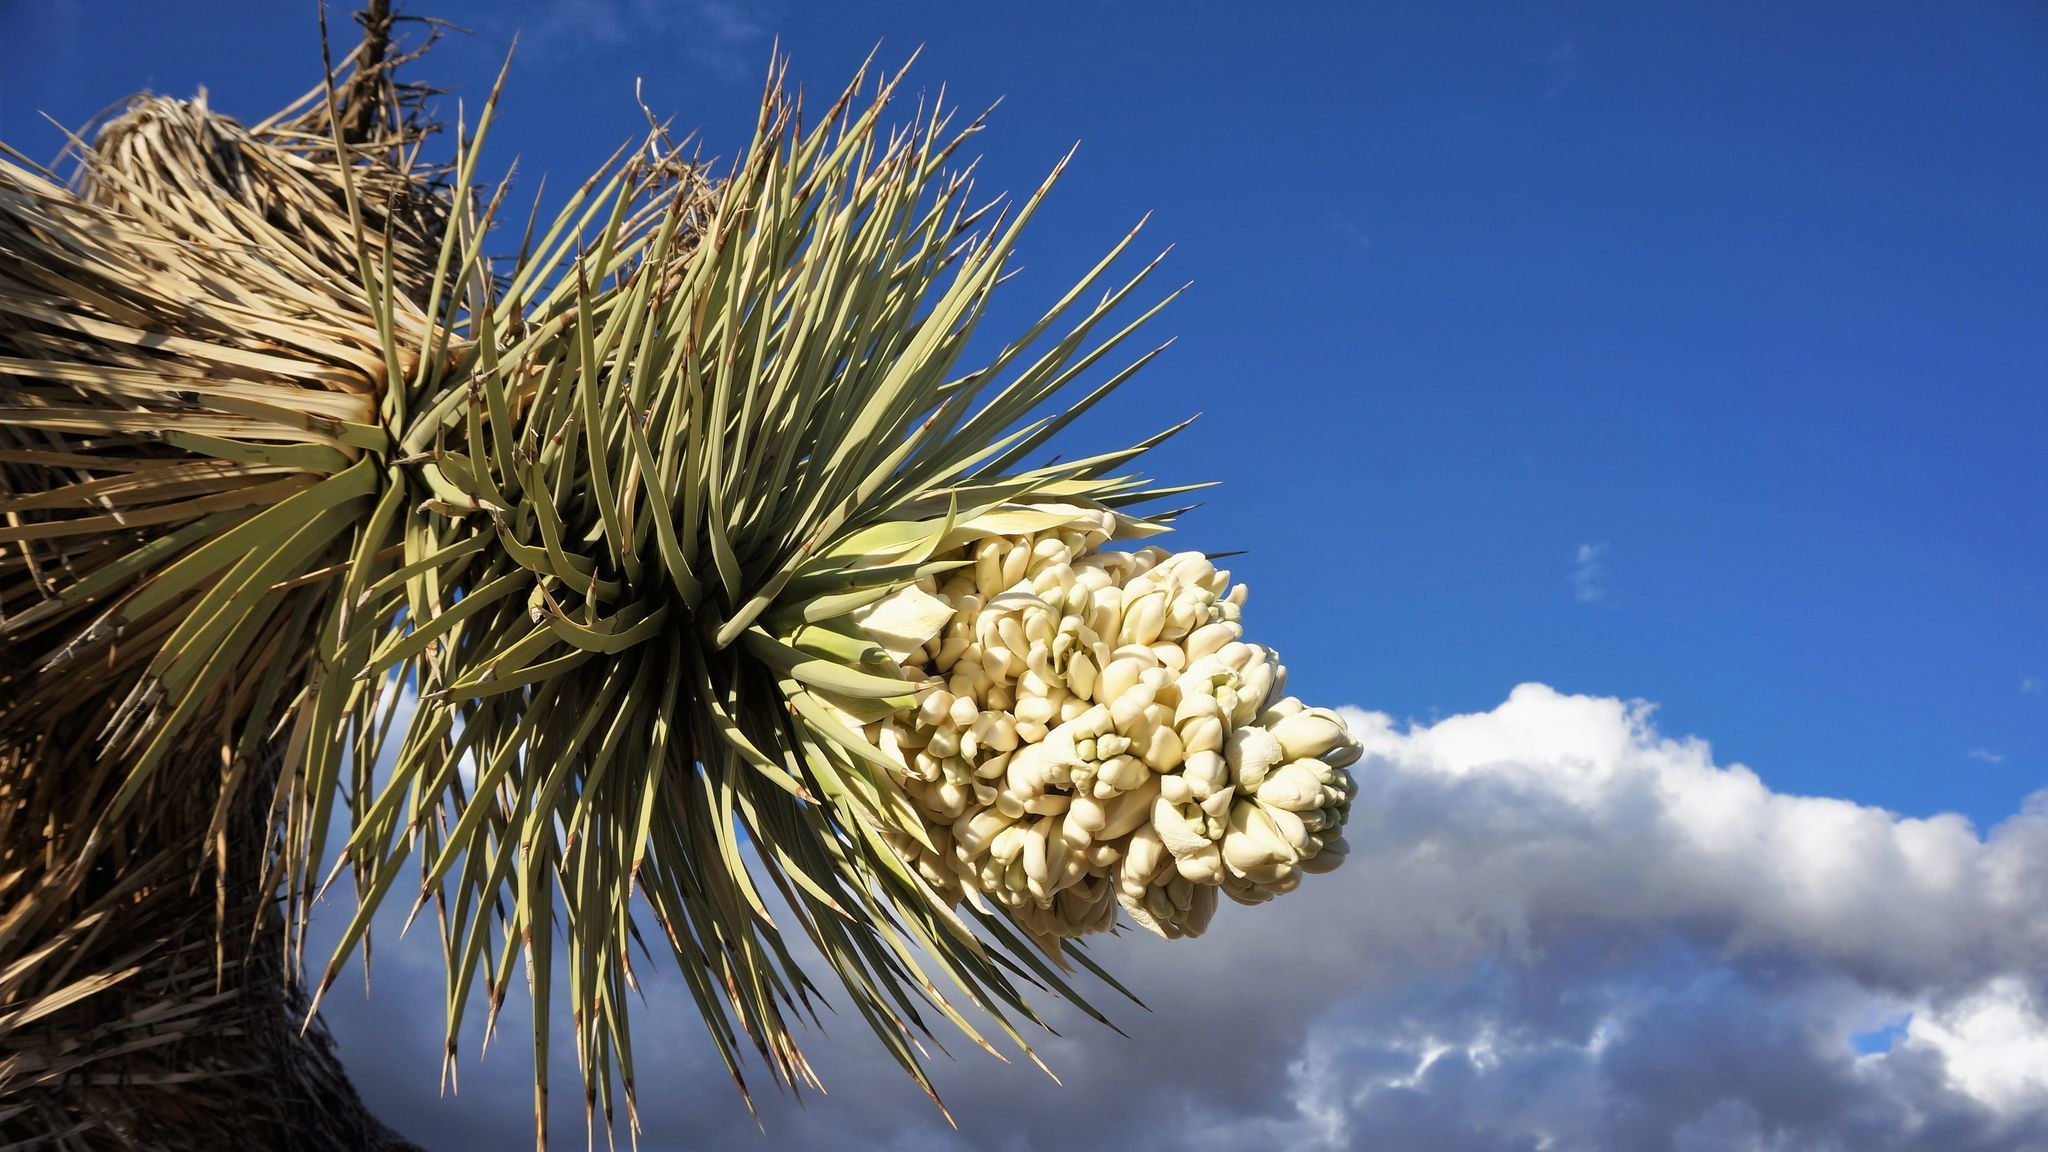 A Joshua tree in bloom near the national park east of Los Angeles.